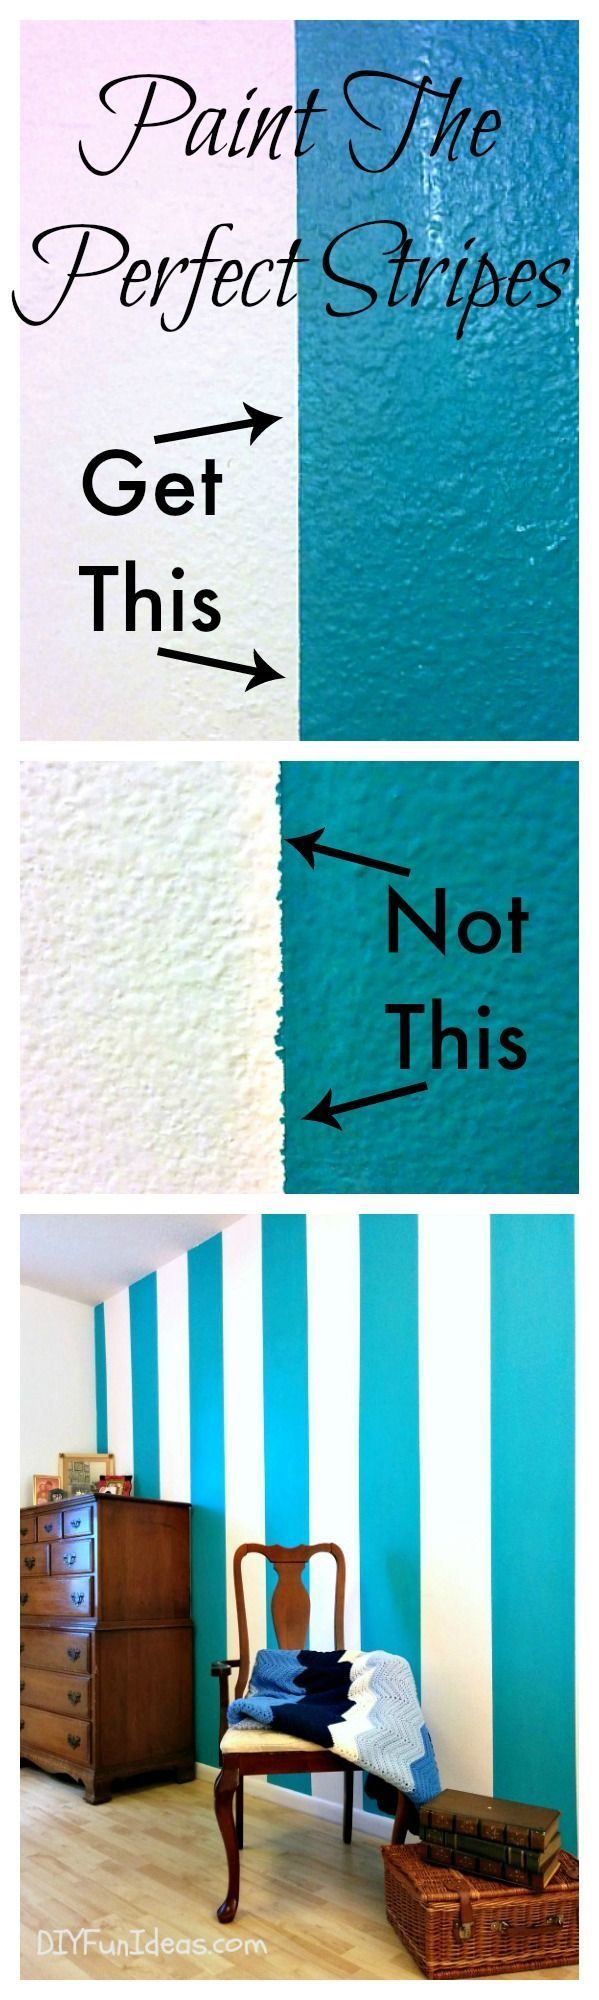 Add some bright colors for Spring with these simple tricks for painting the perfect stripes!